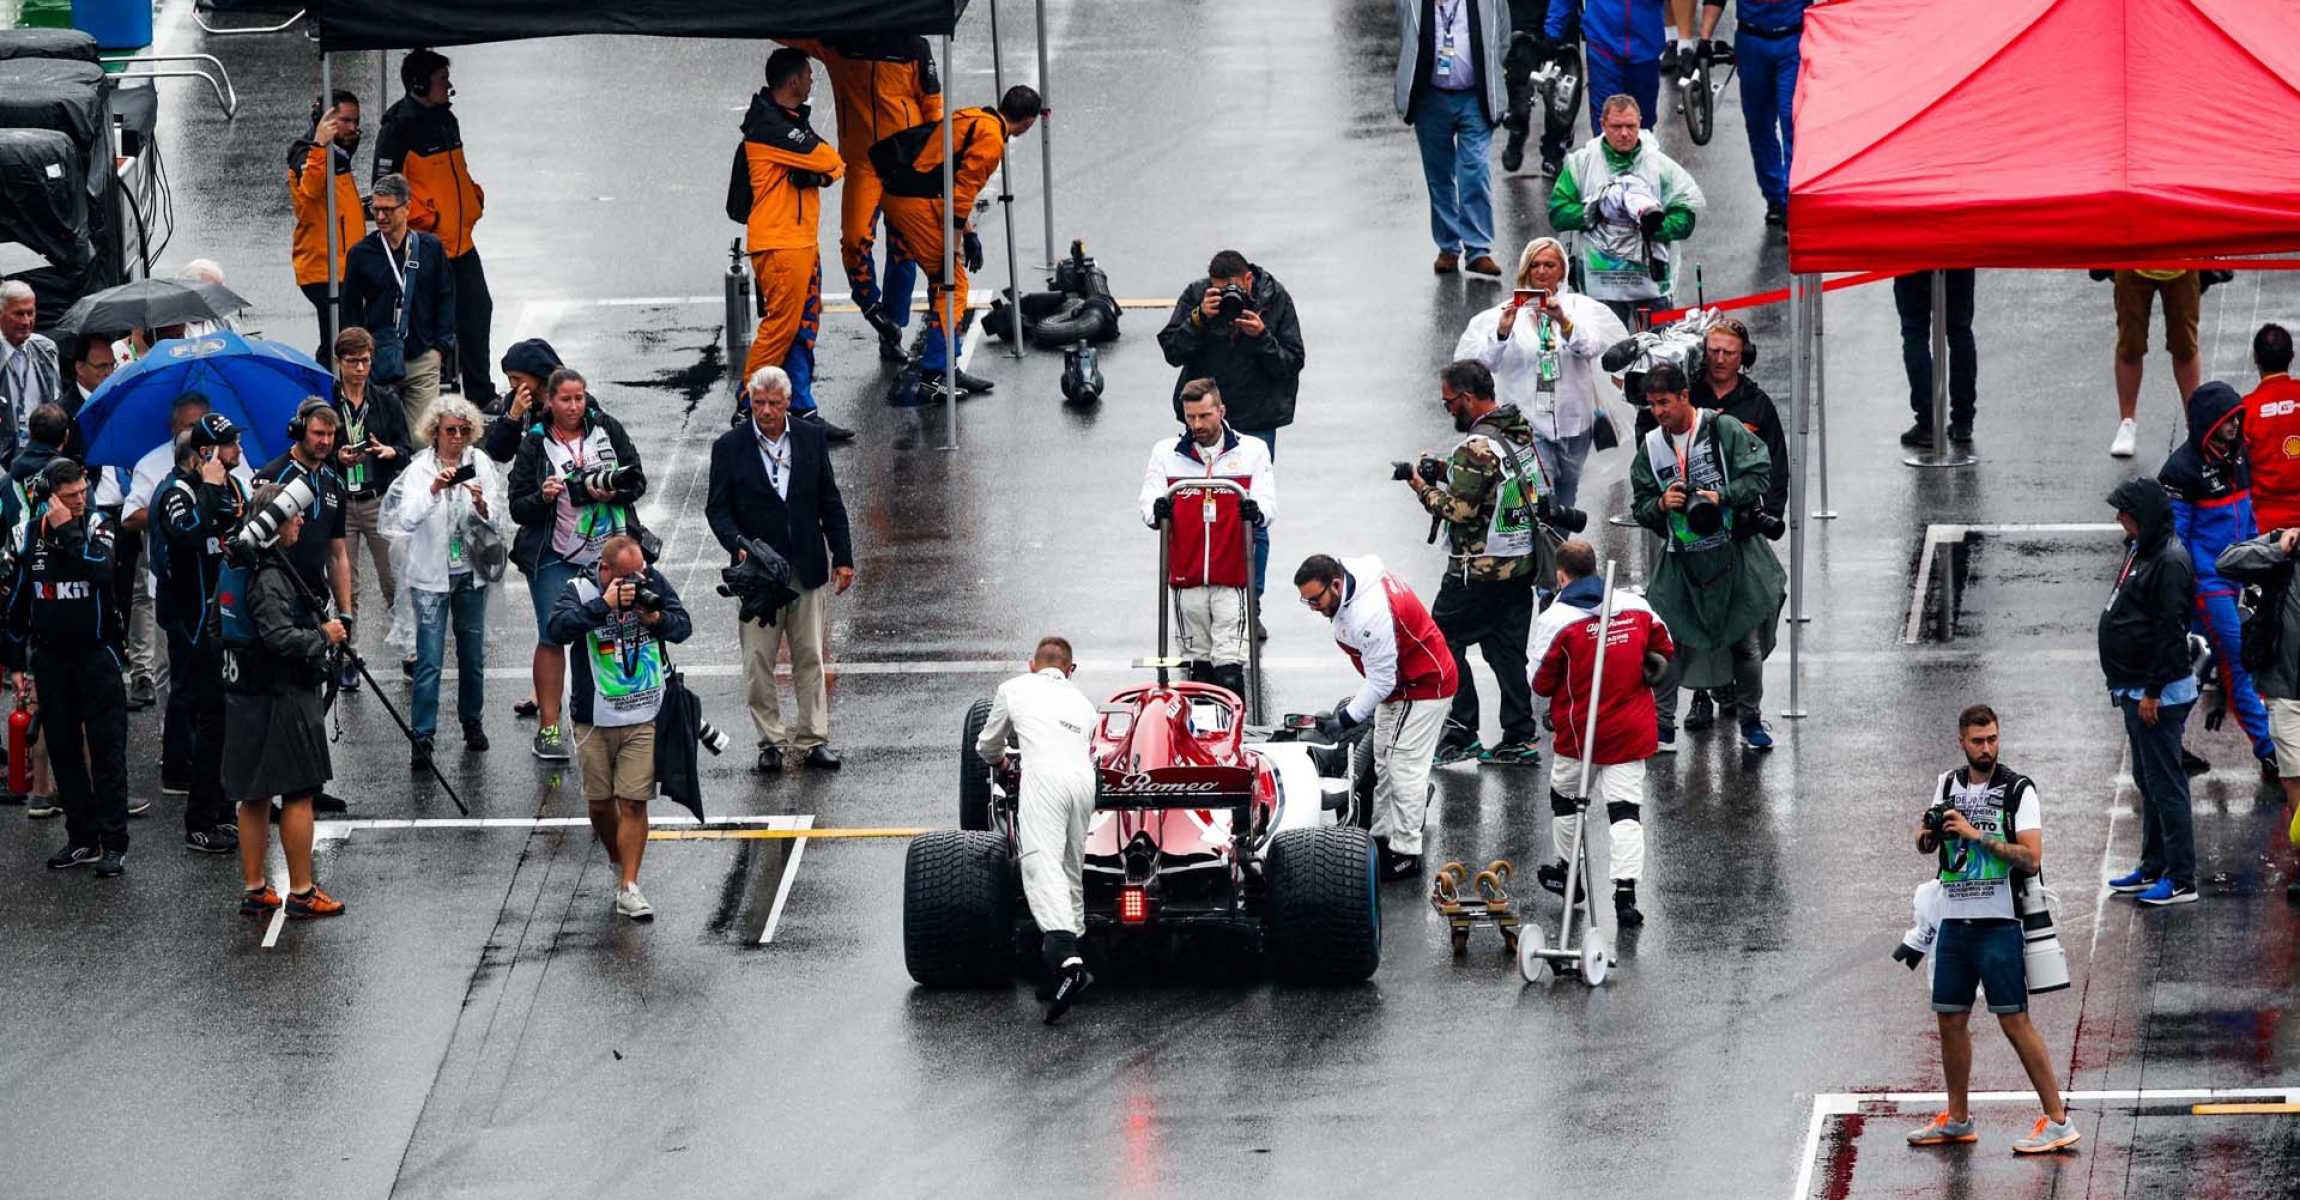 99 GIOVINAZZI Antonio (ita), Alfa Romeo Racing C38 on the starting grid, grille de depart during the 2019 Formula One World Championship, Germany Grand Prix from July 25 to 28, in Hockenheim, Germany - Photo Florent Gooden / DPPI